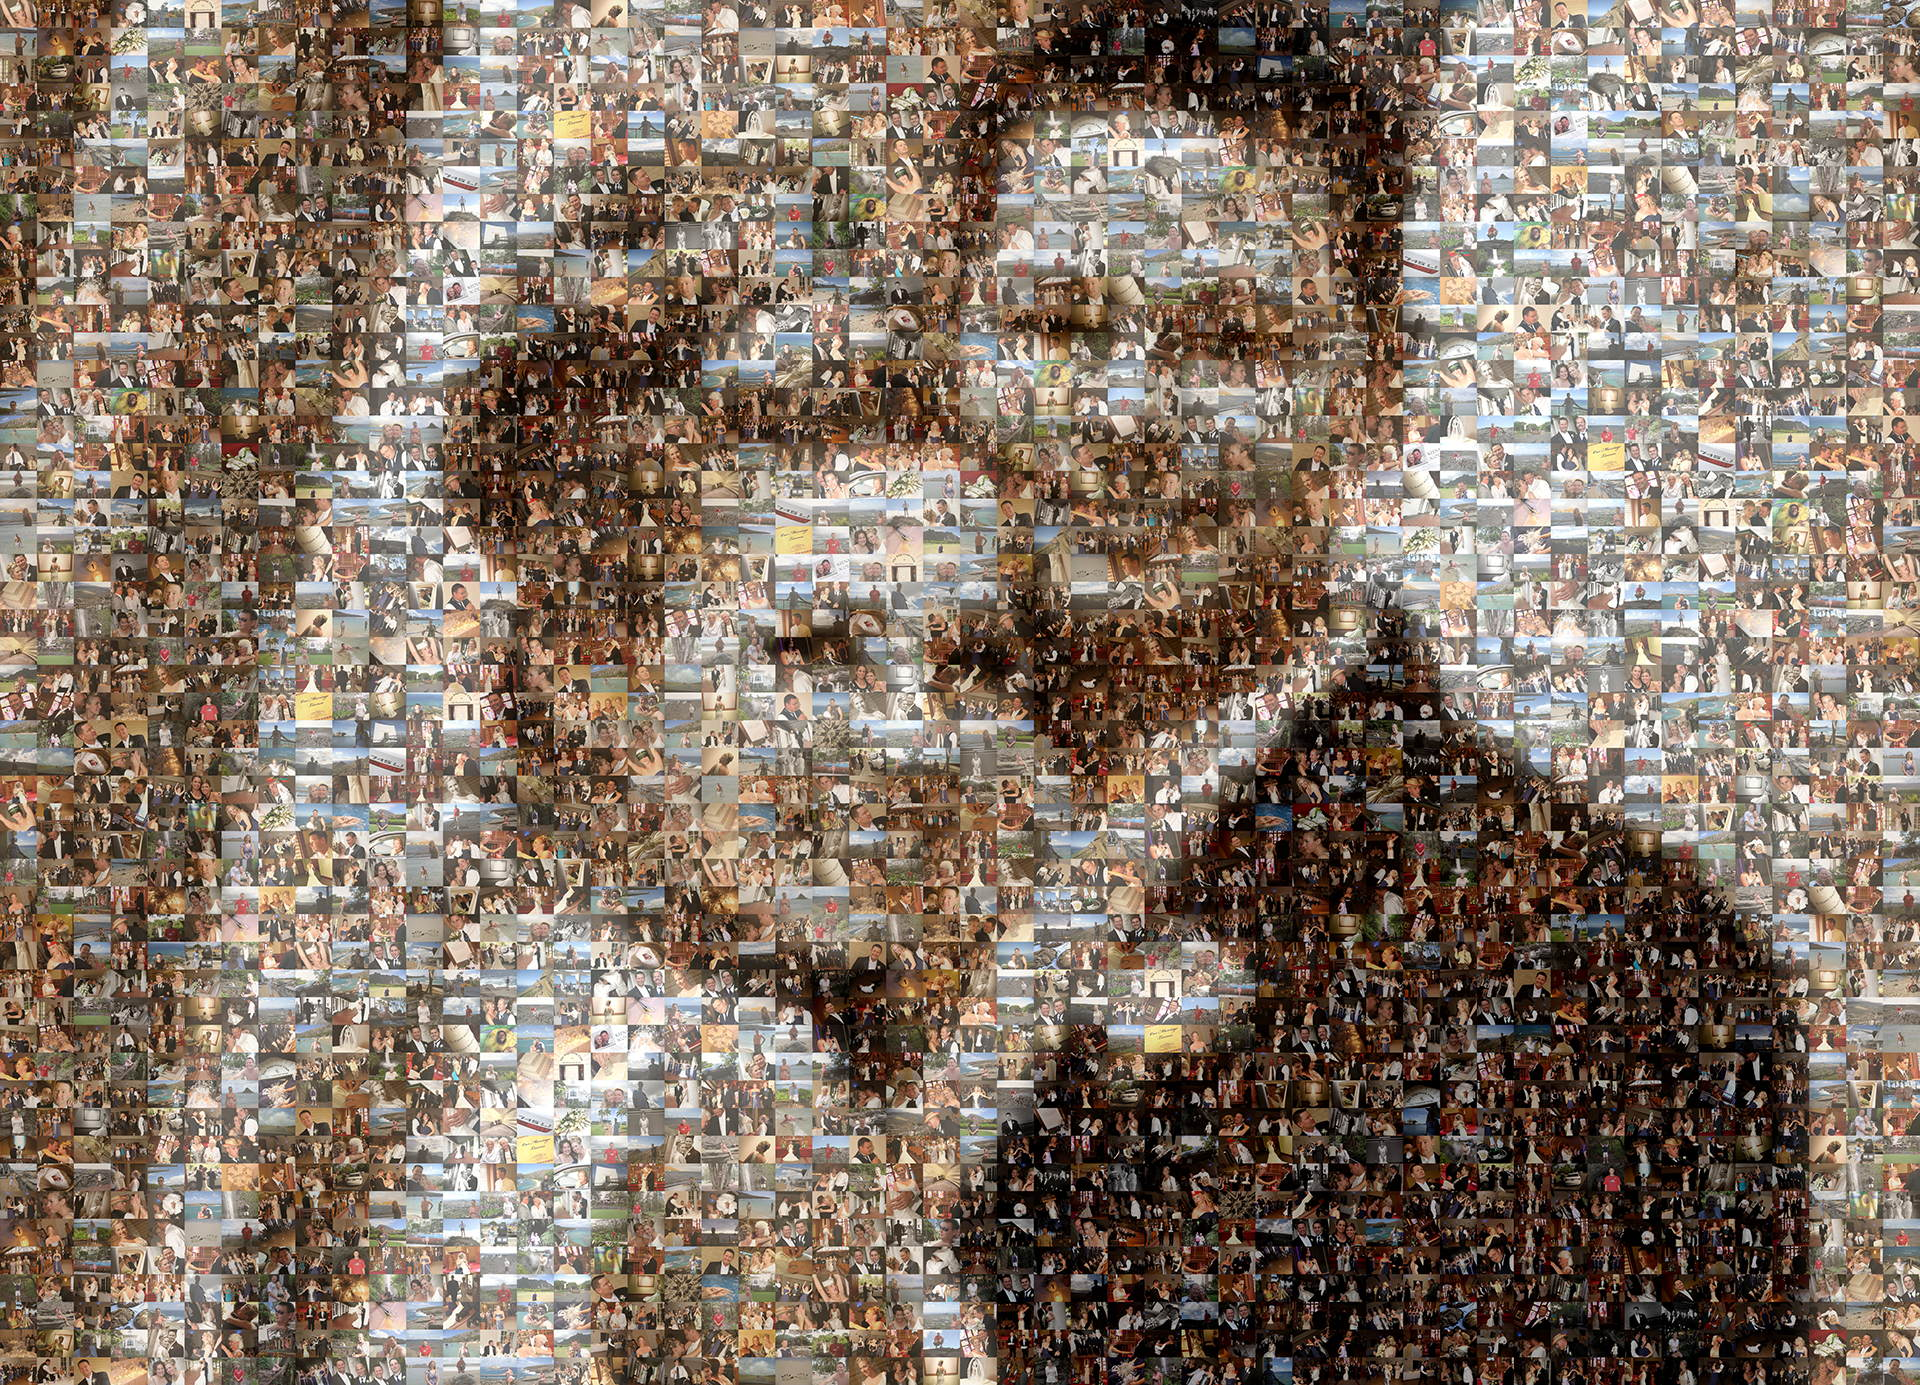 photo mosaic created using 270 lifetime photos